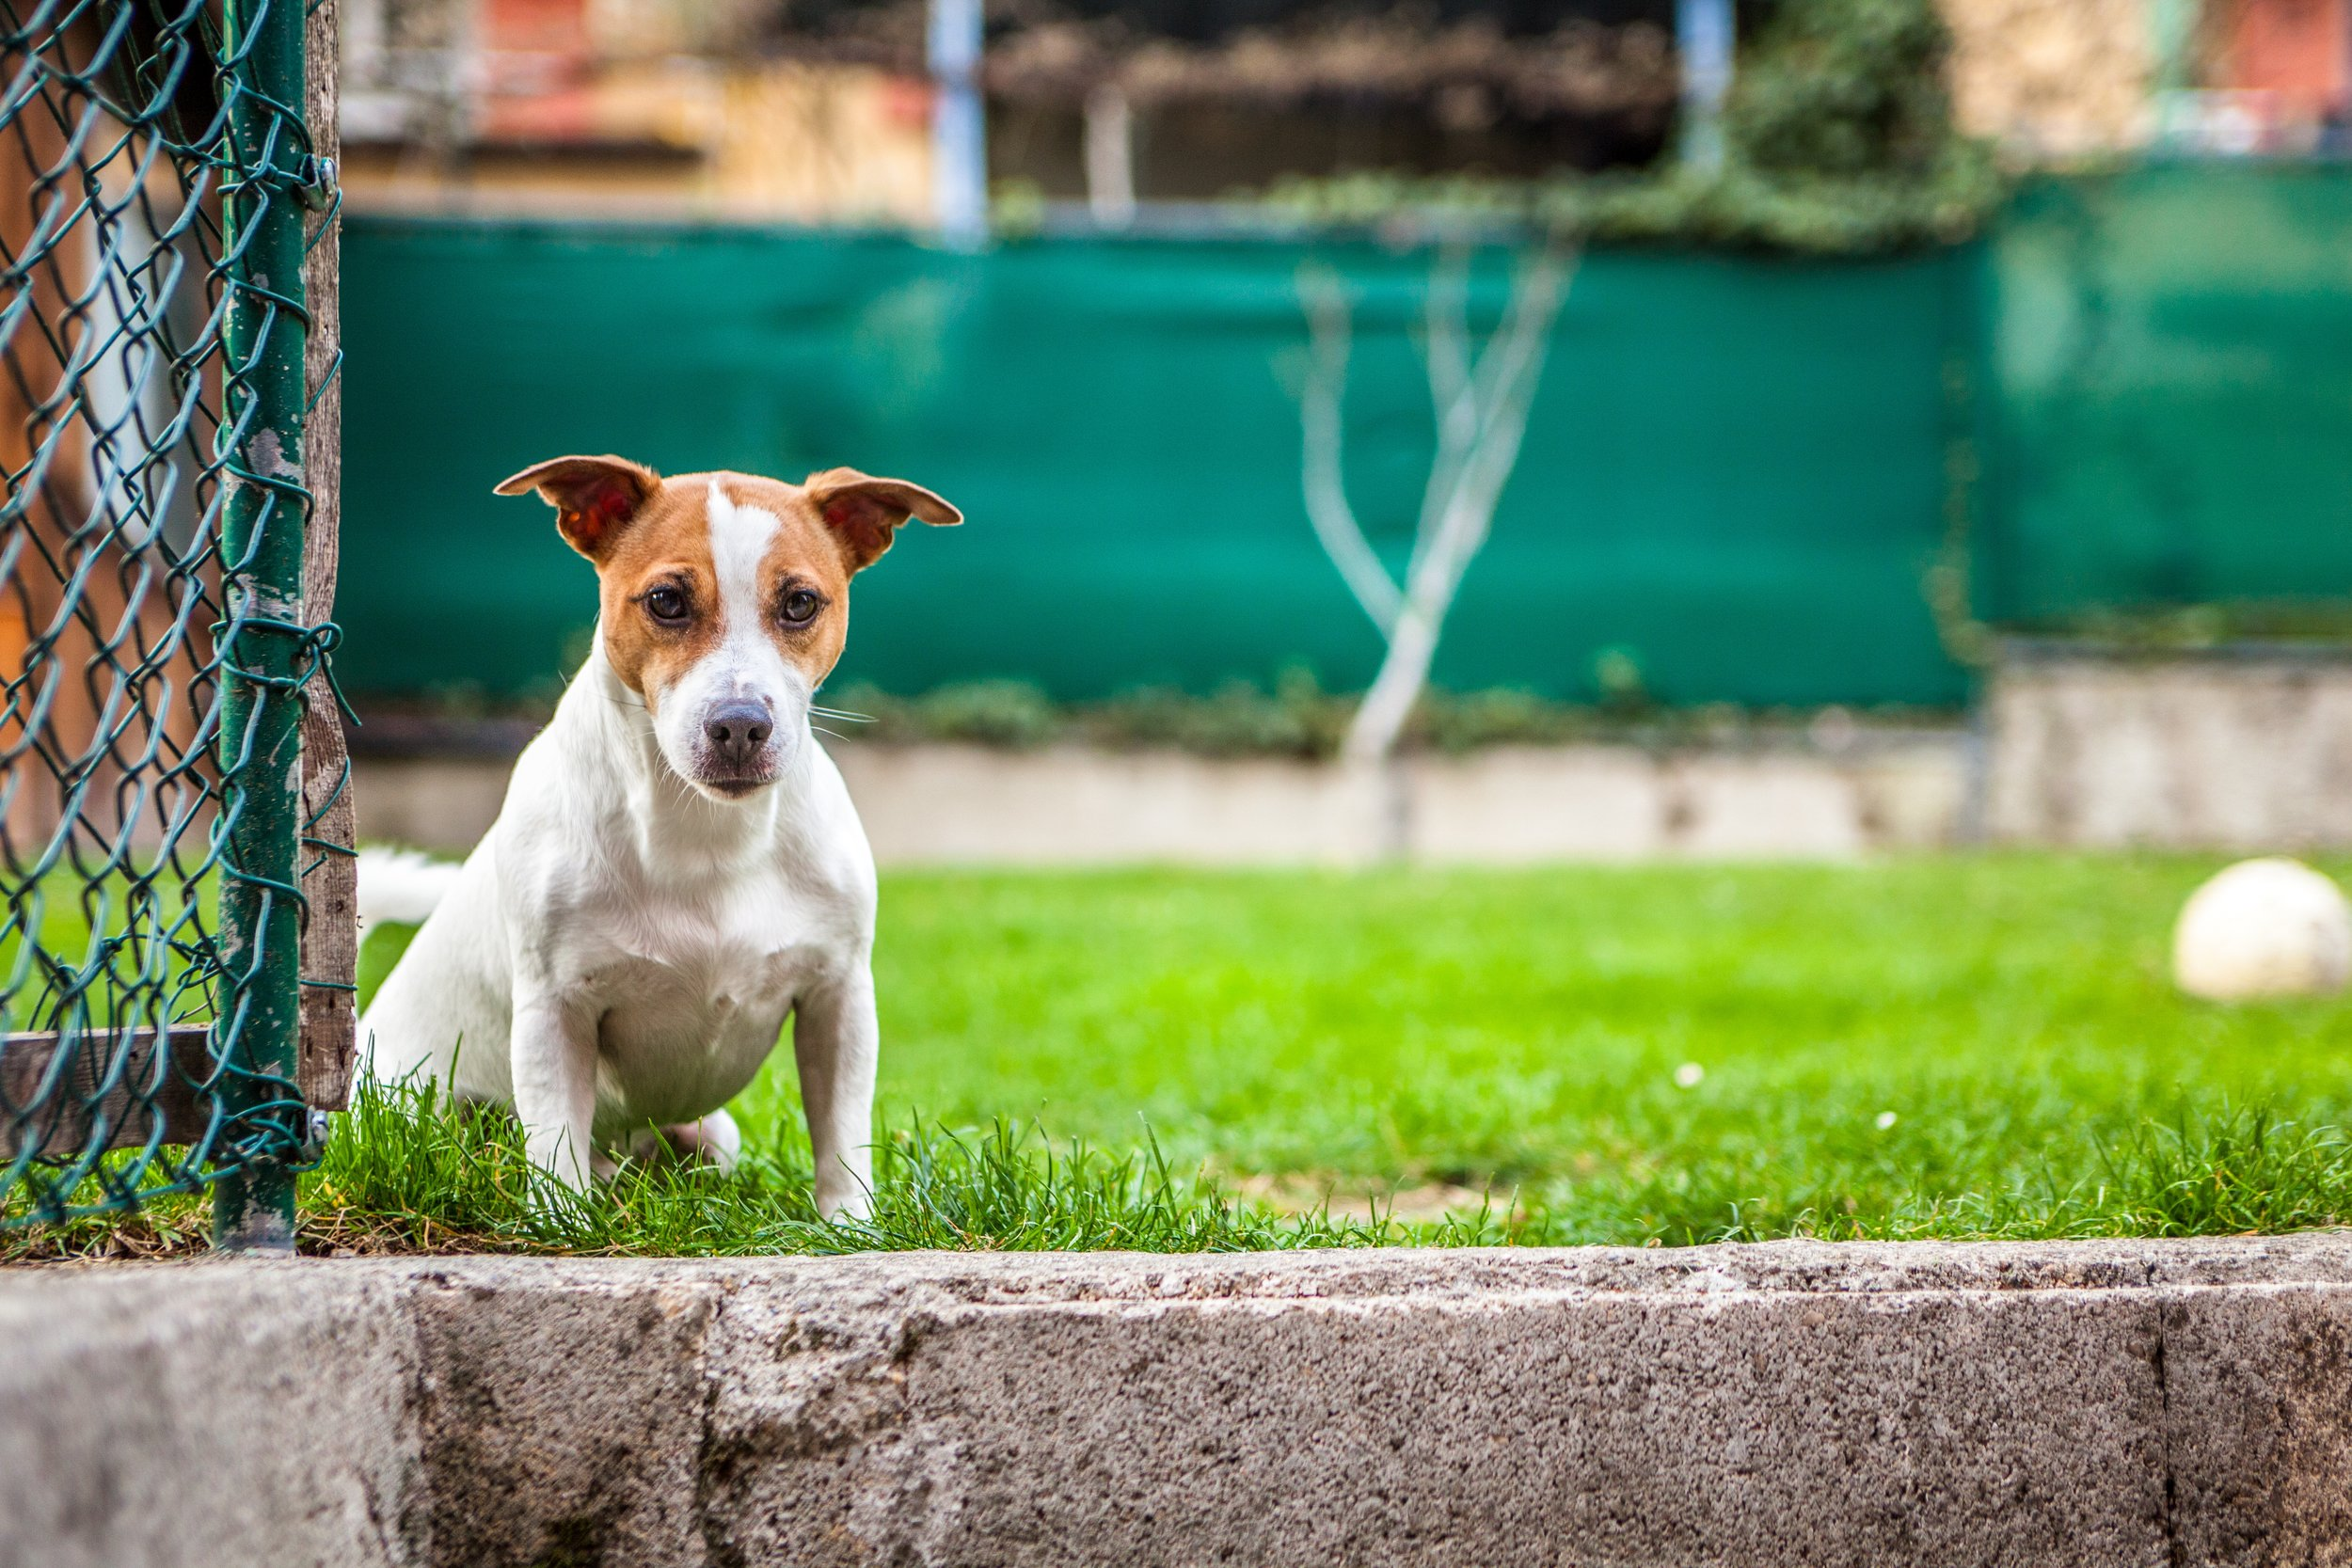 Jack Russells are high-energy dogs that need loads of activity time